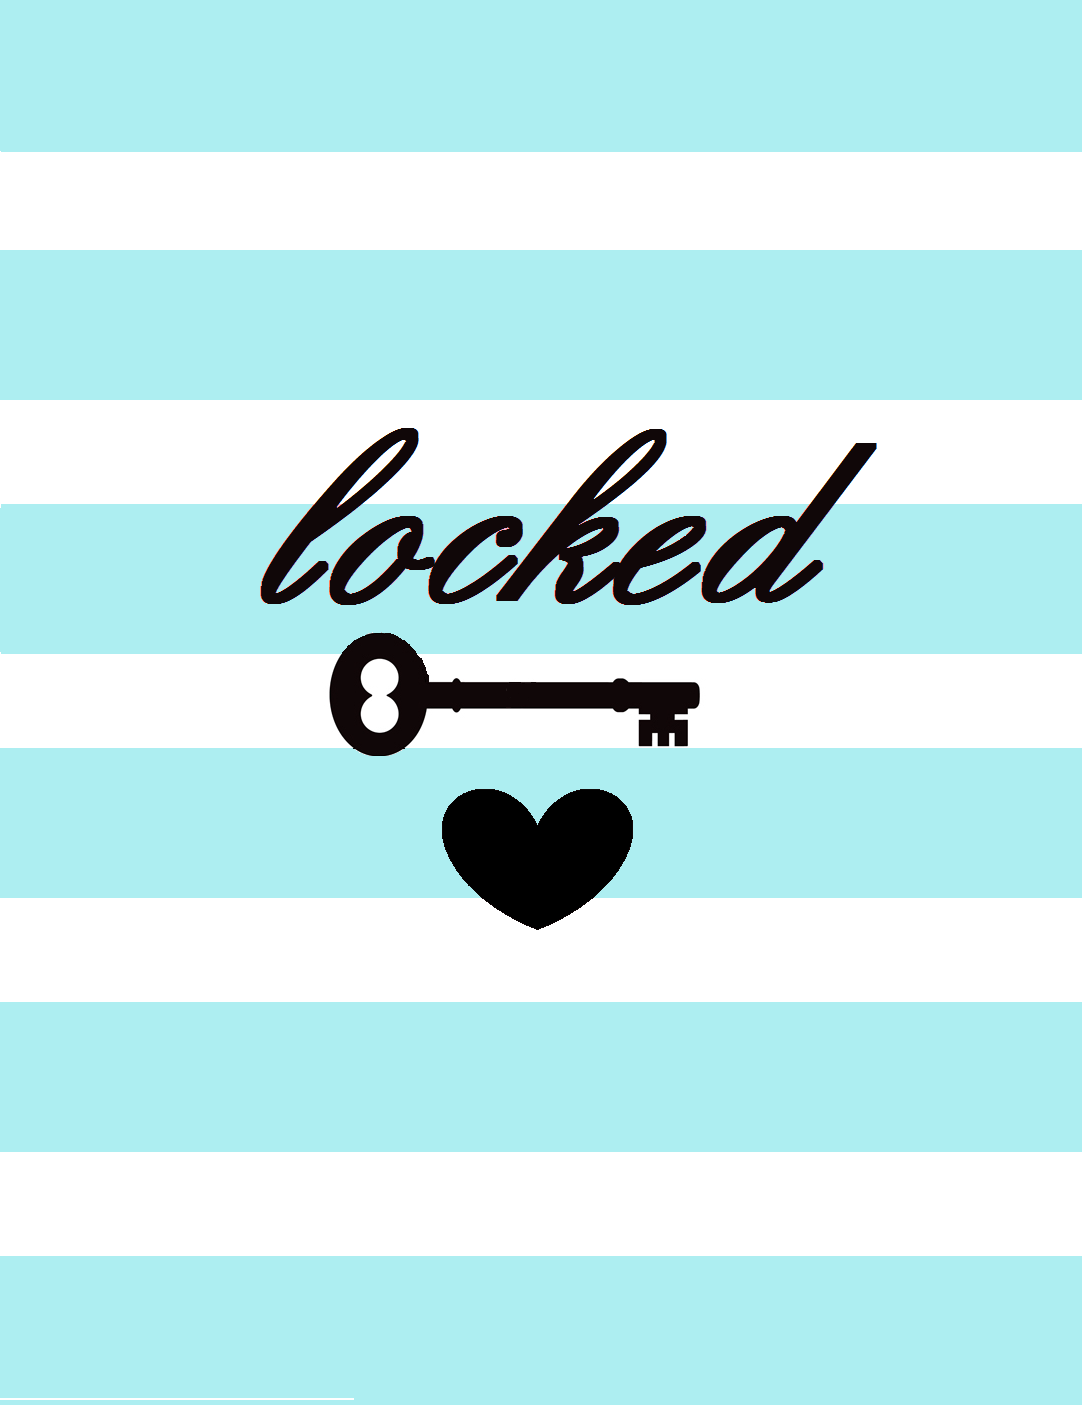 locked wallpaper